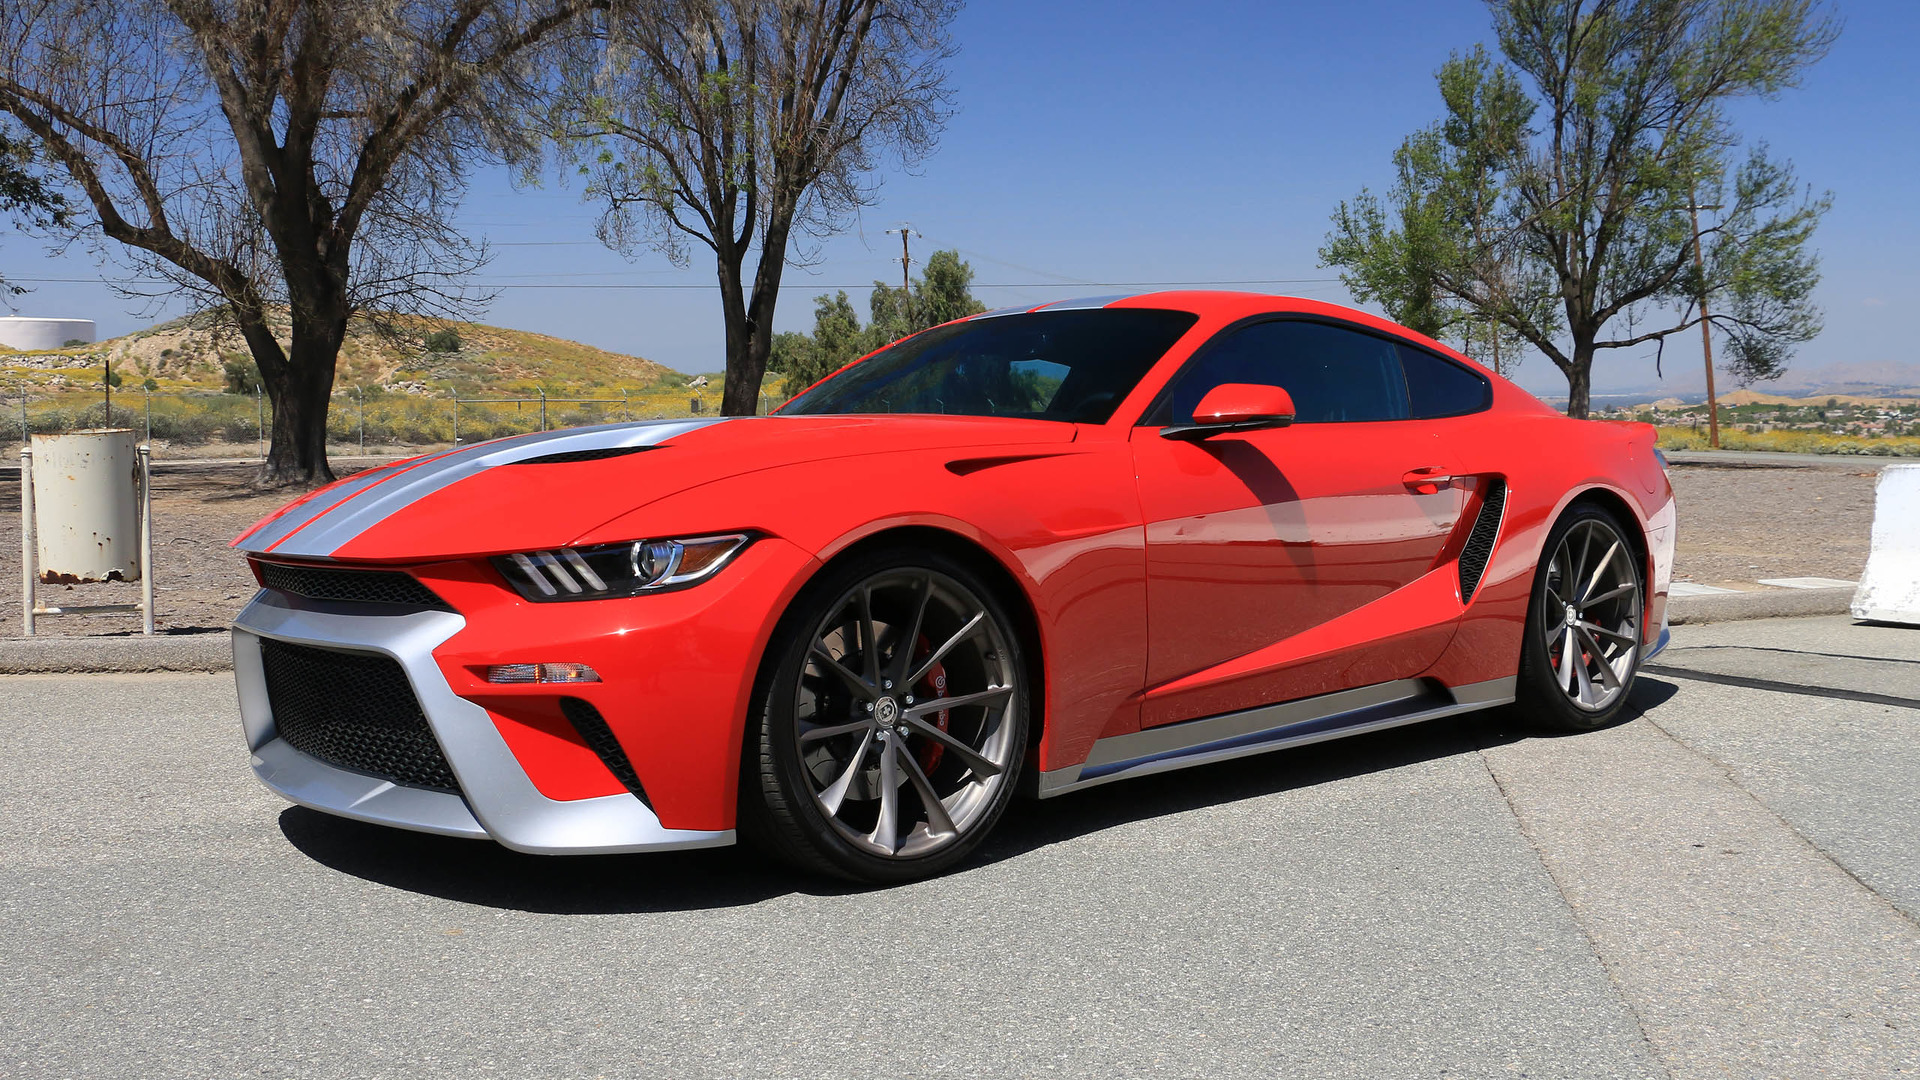 2017 ford mustang gt specs 0 60 best ford foto in the word. Black Bedroom Furniture Sets. Home Design Ideas